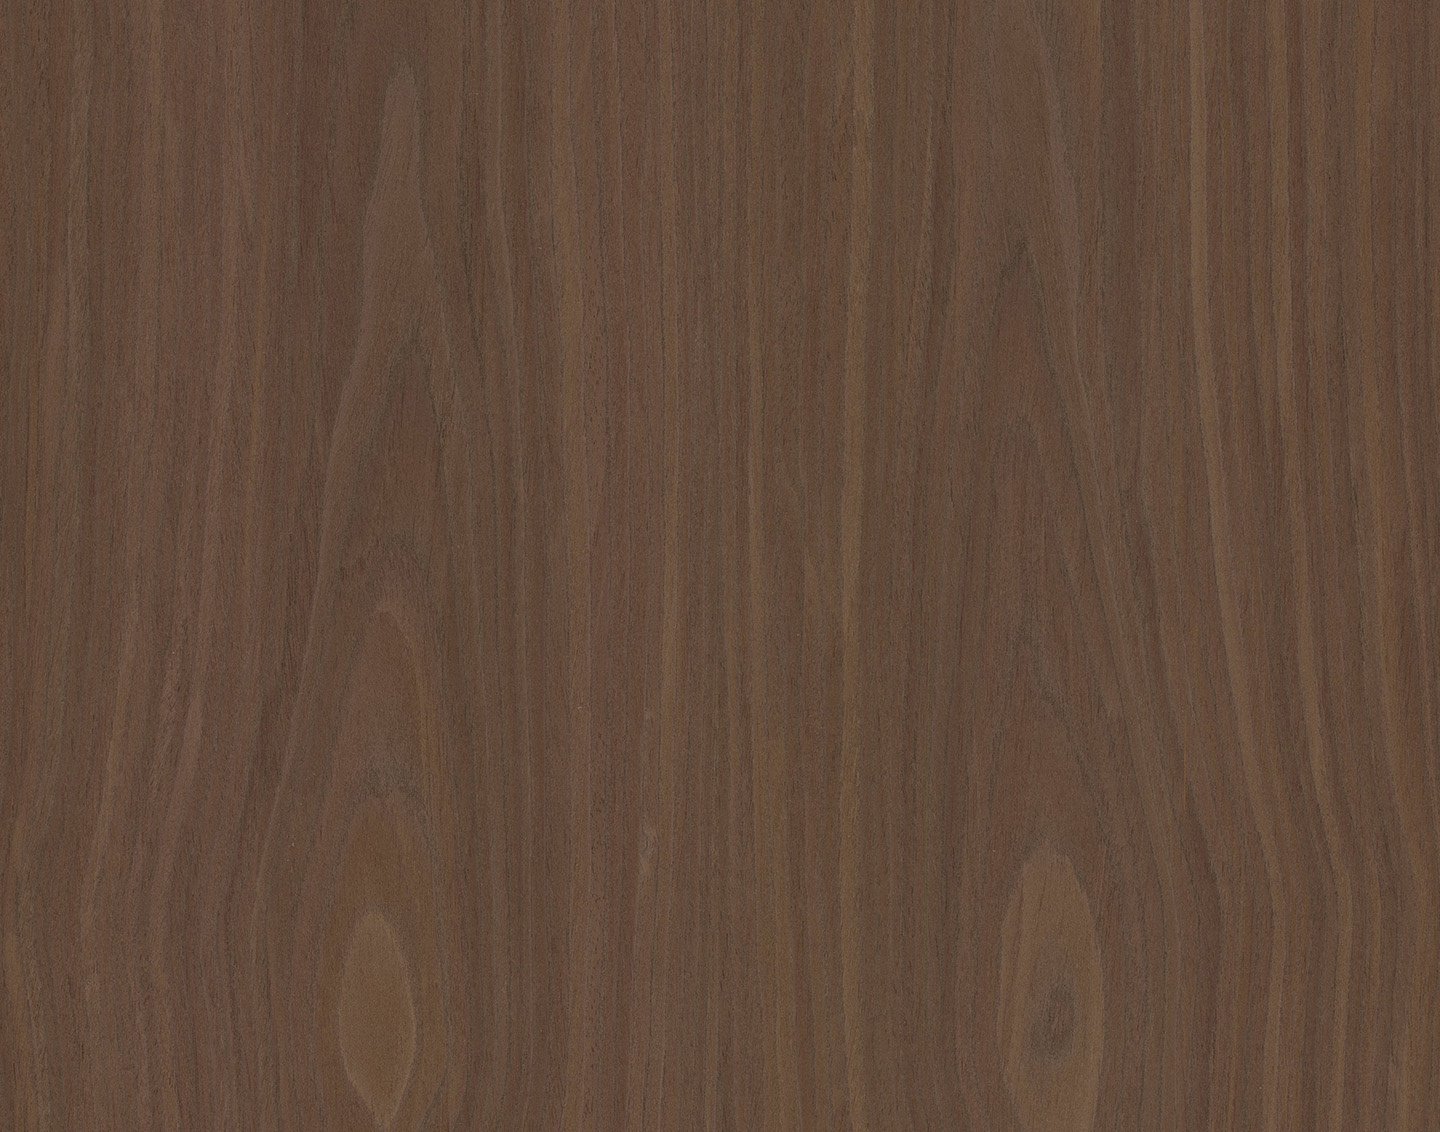 ALPI Xilo 2.0 Walnut 2-Flamed